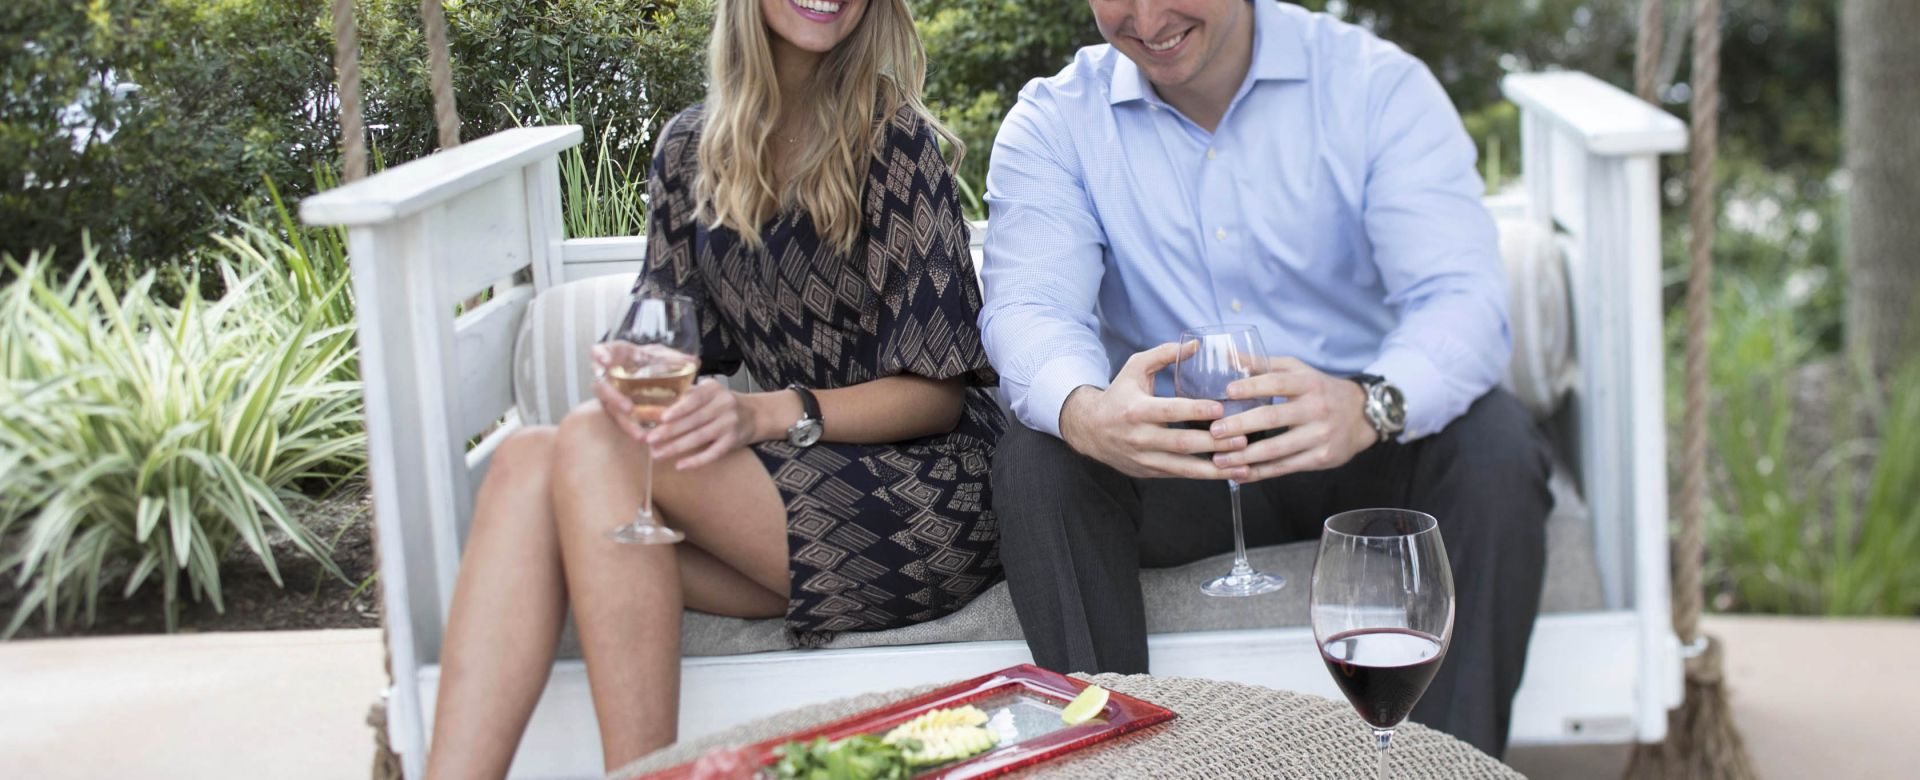 Couple enjoying food and drinks on Robard's Steakhouse patio.